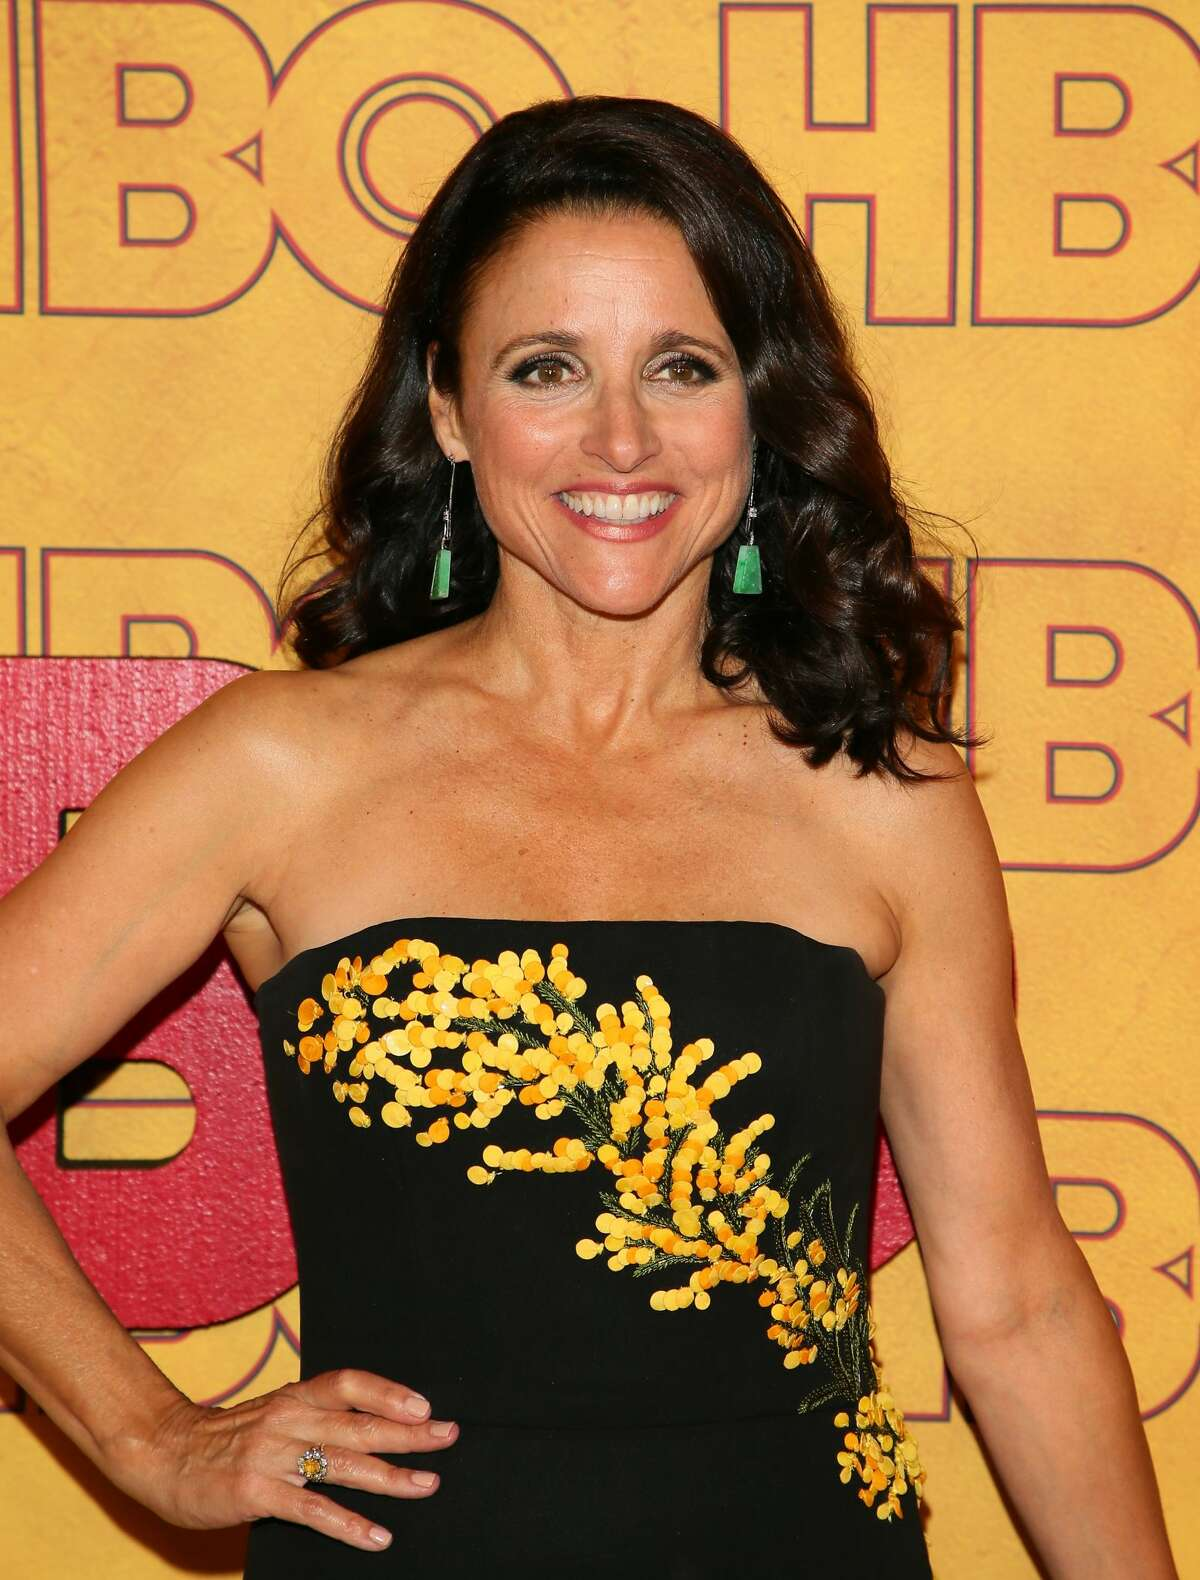 Julia Louis-DreyfusThe Emmy award-winning actress revealed on Twitter in September 2017 that she has breast cancer.Click through the slideshow to see celebrities who have been open about their disease, health issues: